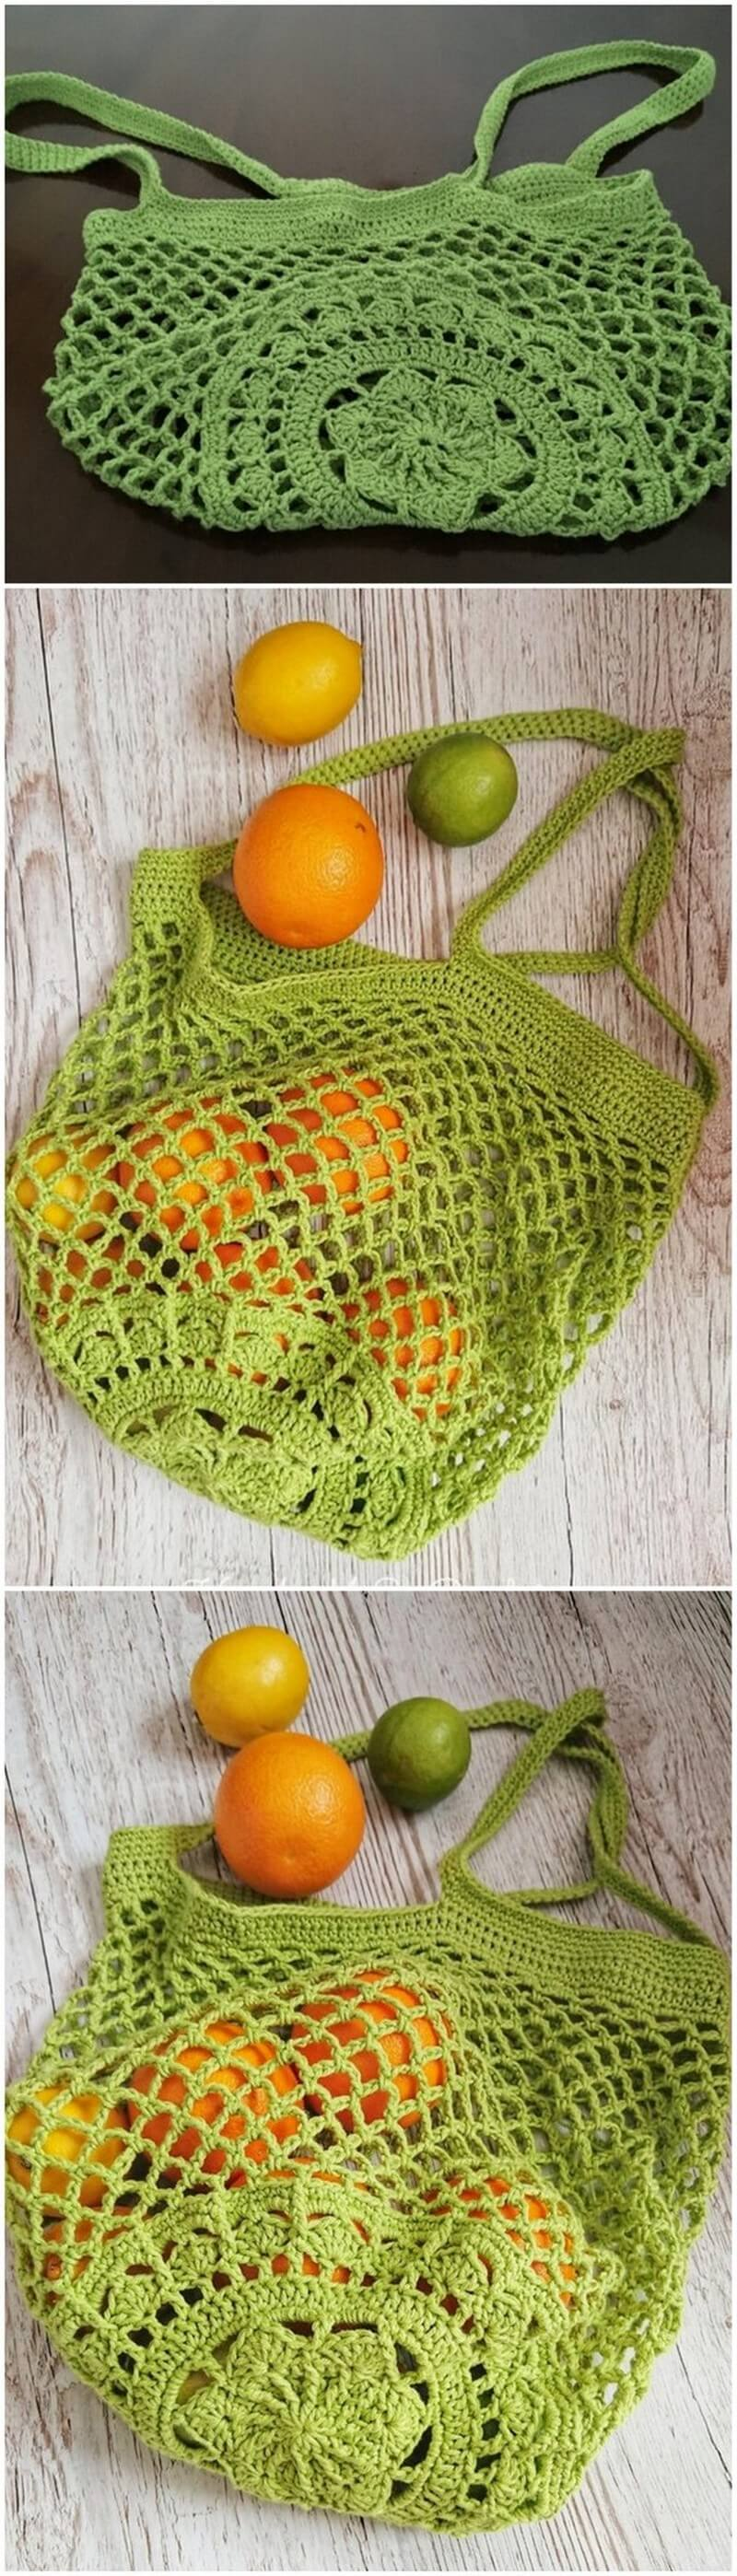 Crochet Bag Pattern (36)